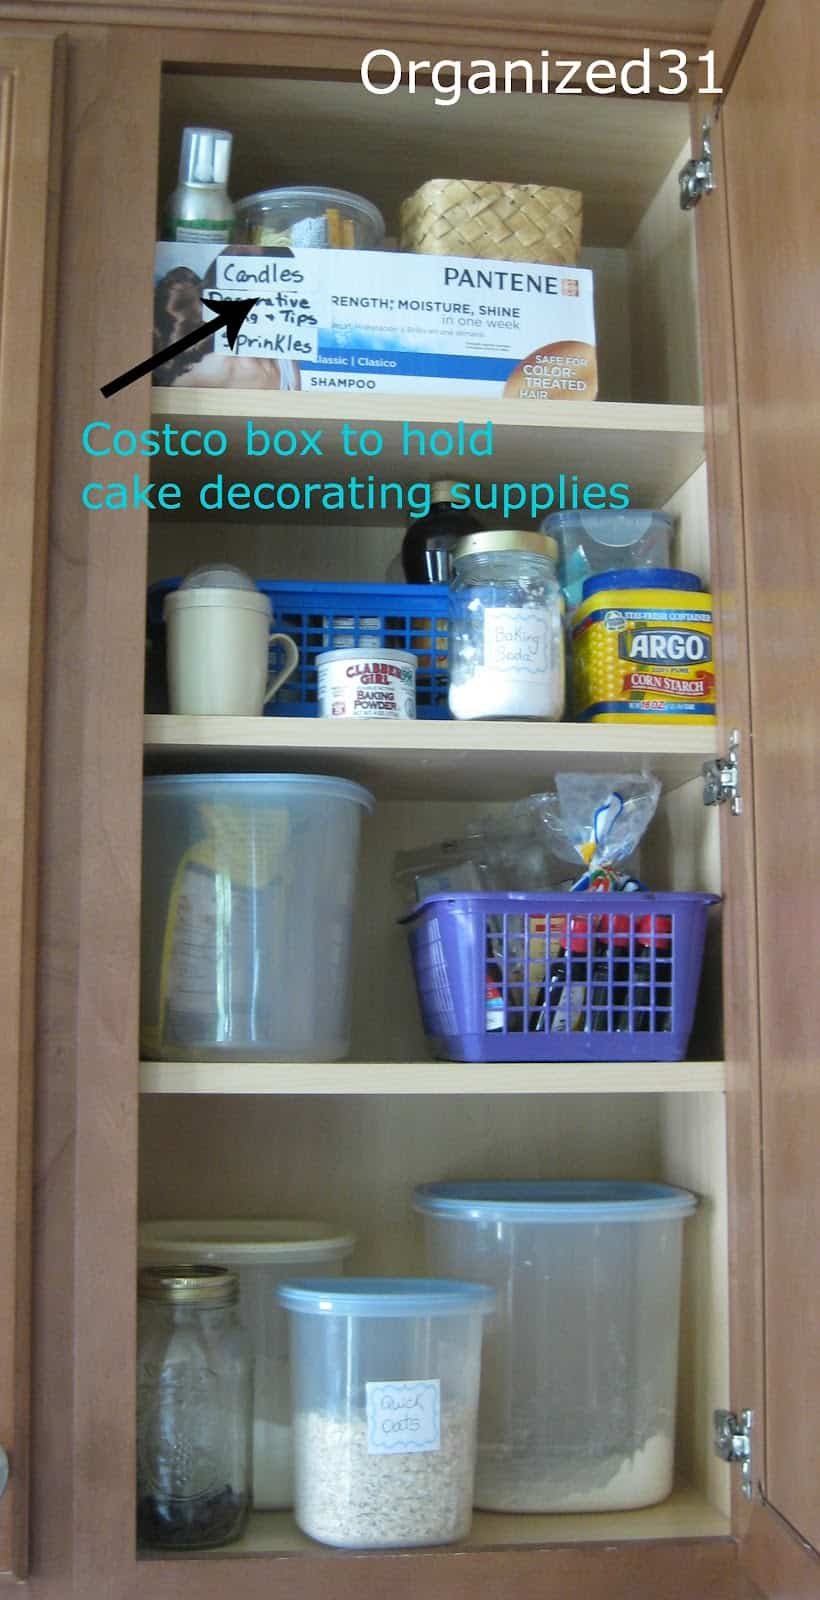 Organizing My Kitchen With Repurposed Packaging Organized 31